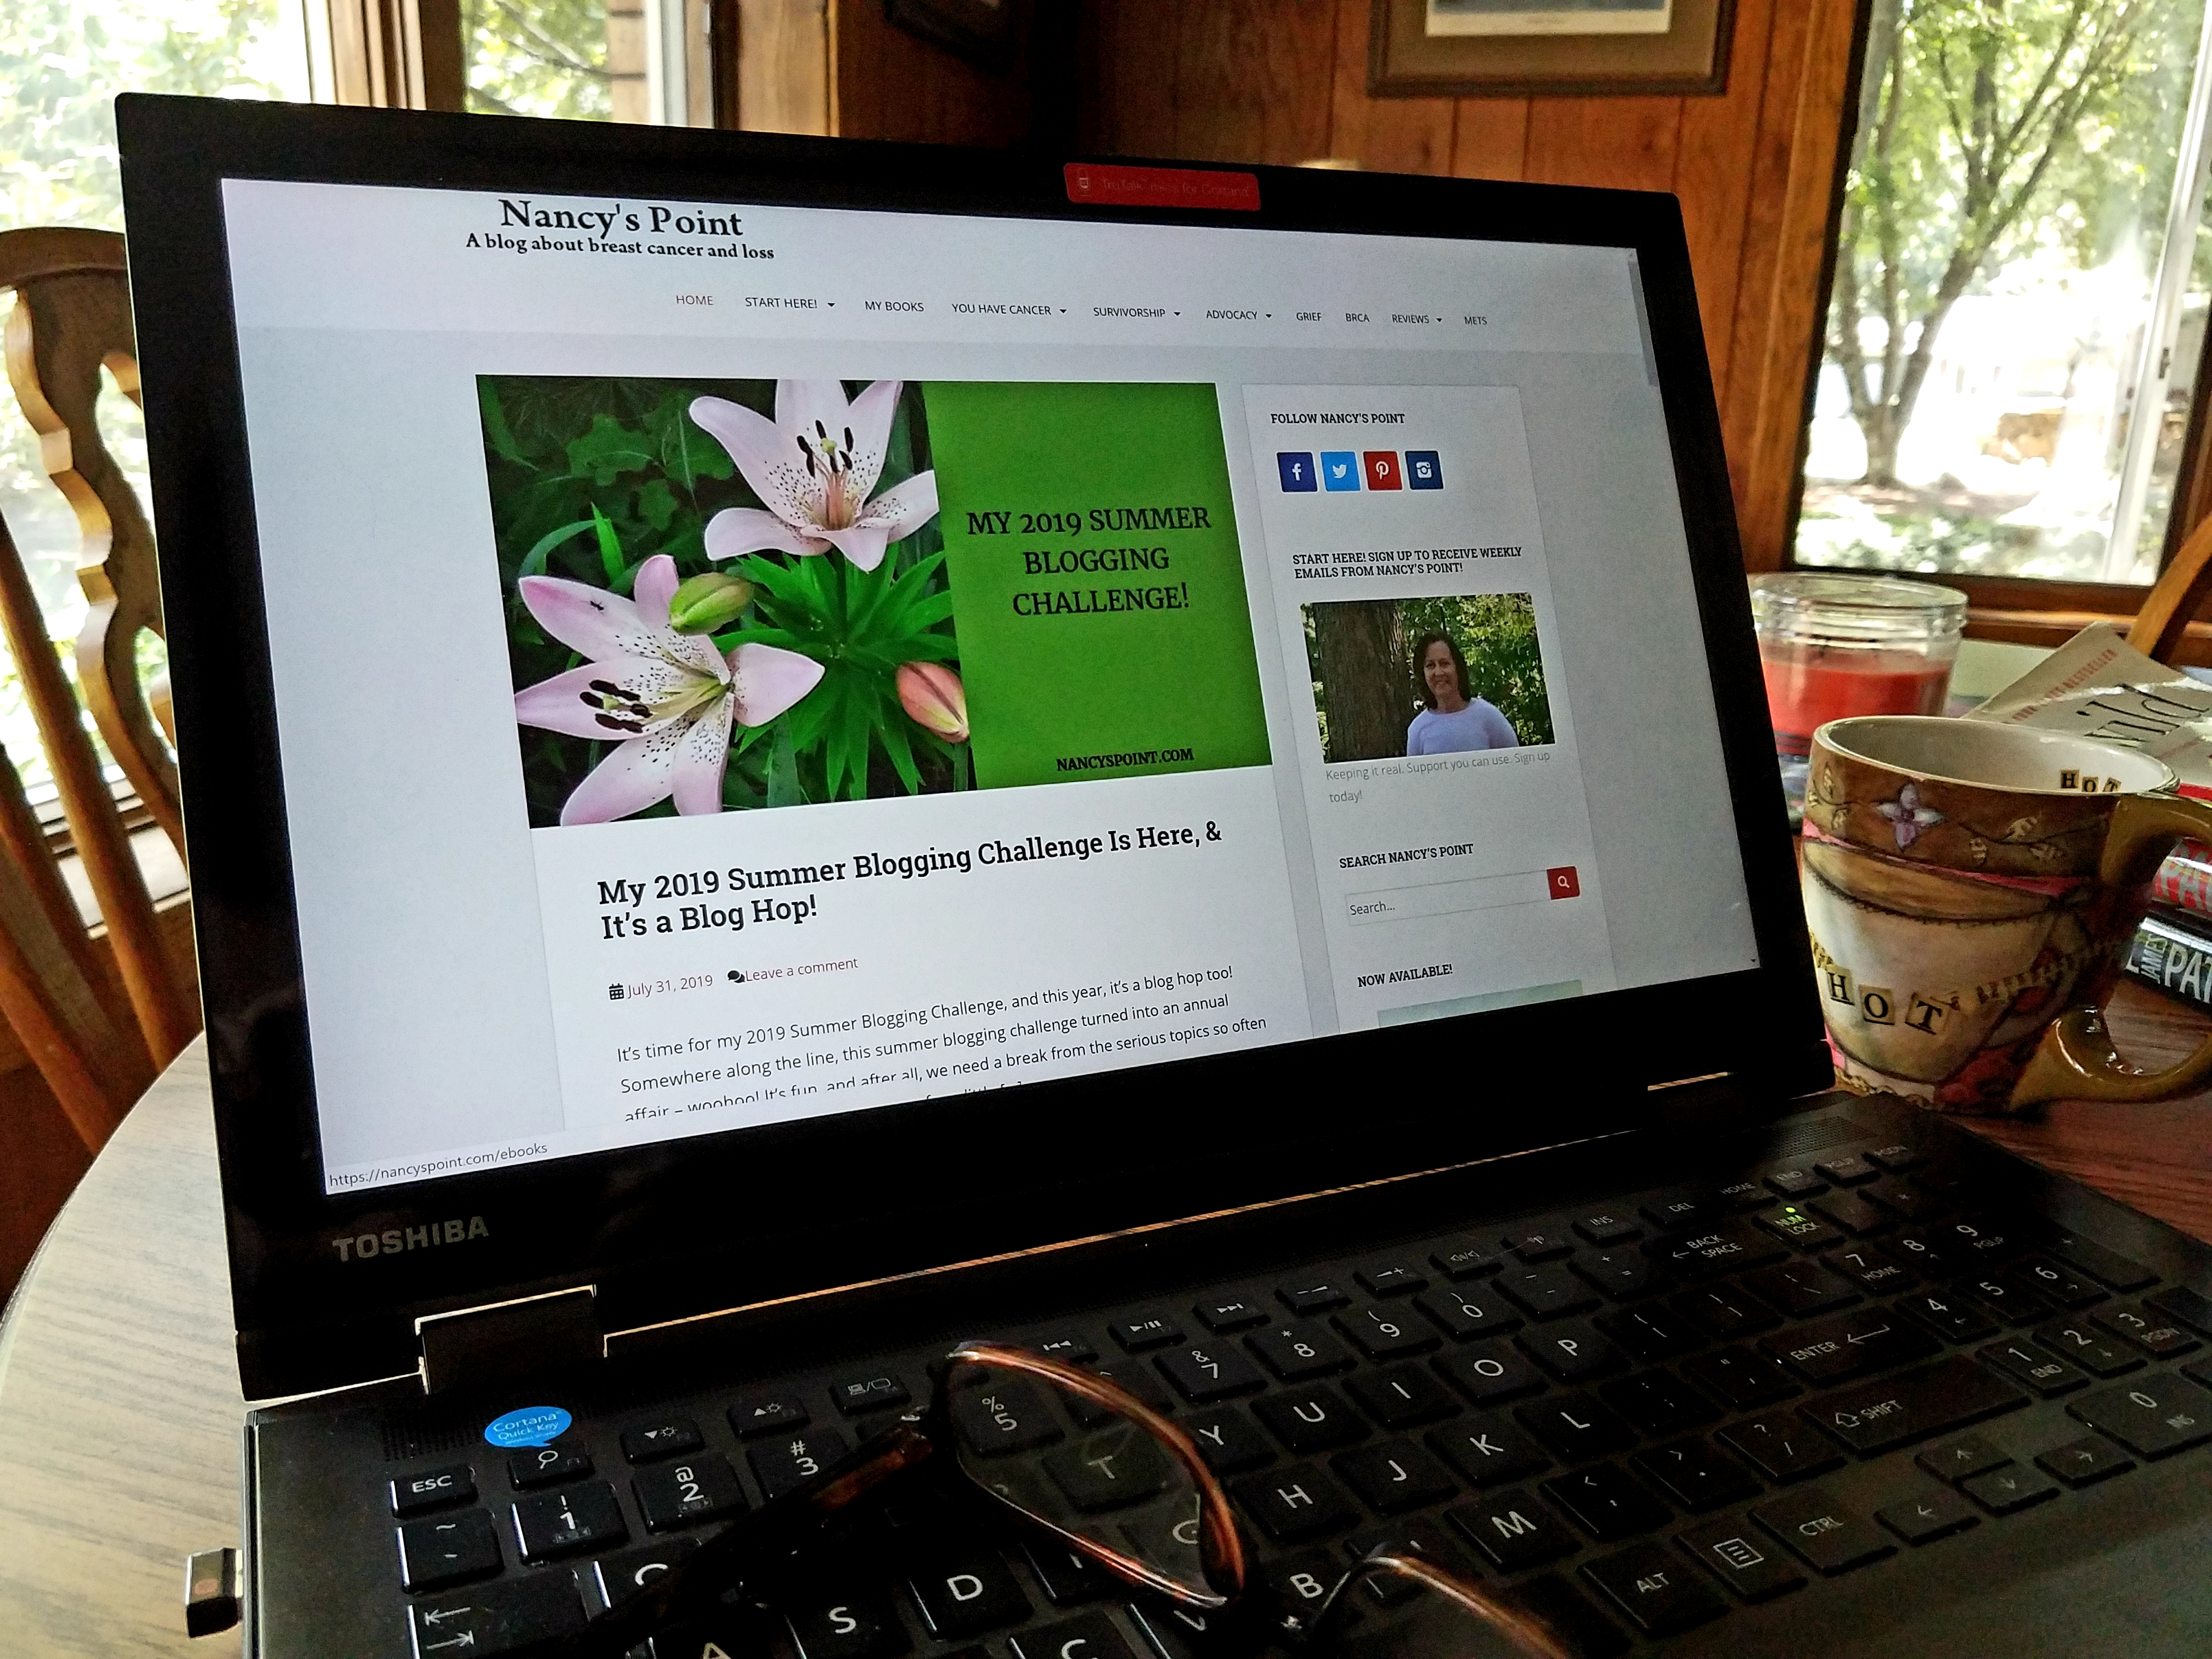 My 2019 #Summer #Blogging Challenge & It's a #BlogHop! #blogger #blogs #writing